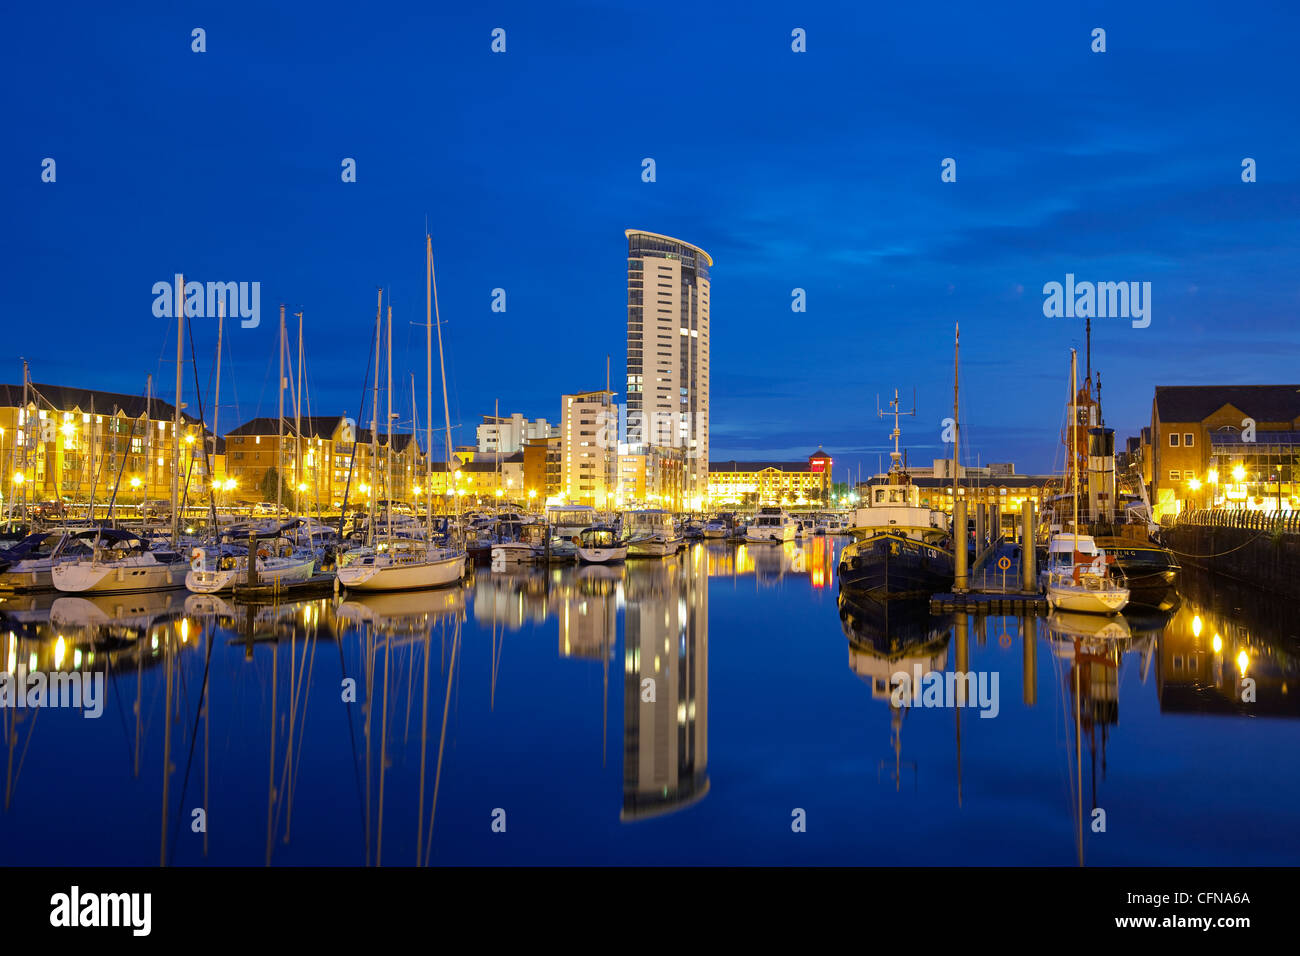 Swansea Marina, Swansea, West Glamorgan, South Wales, Wales, United Kingdom, Europe Stock Photo